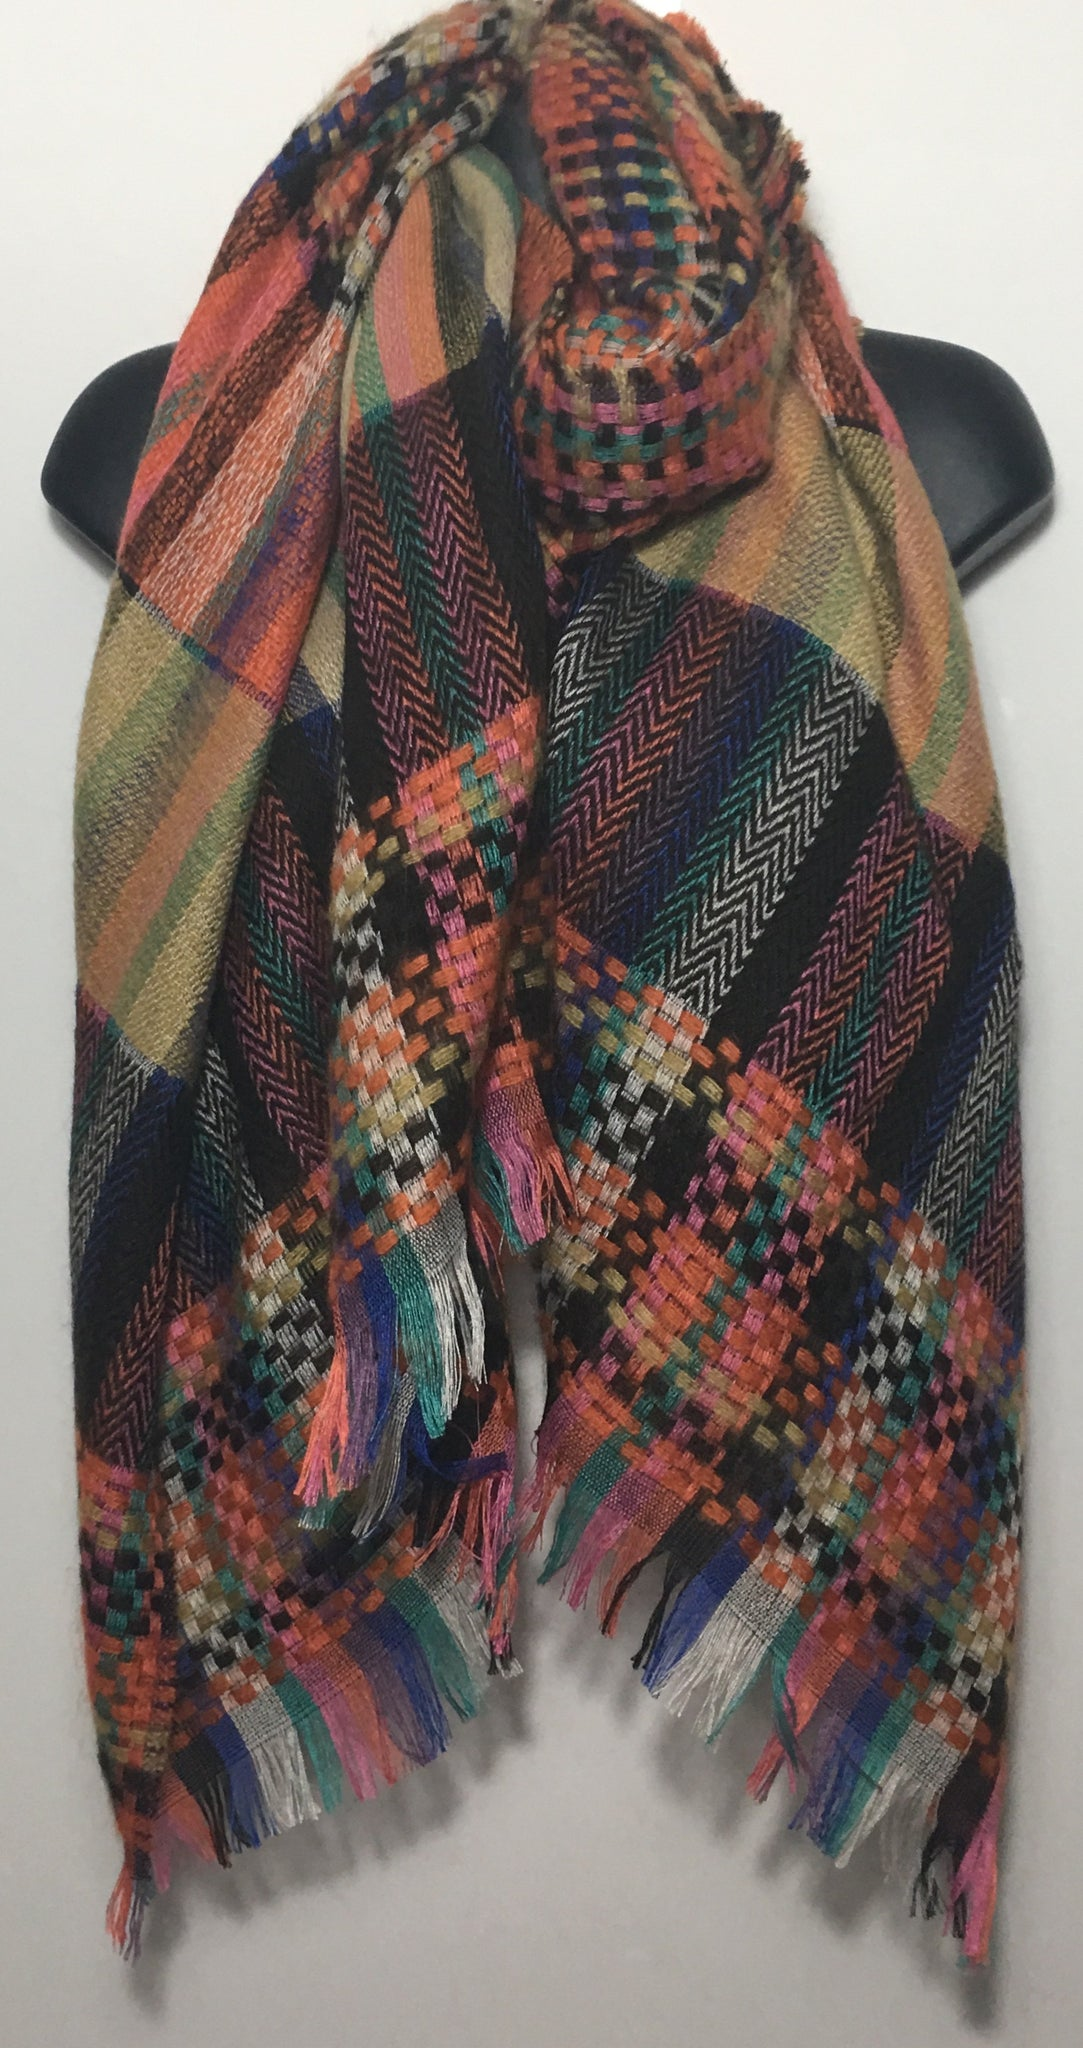 Abstract woven scarf in shades of beige orange and black